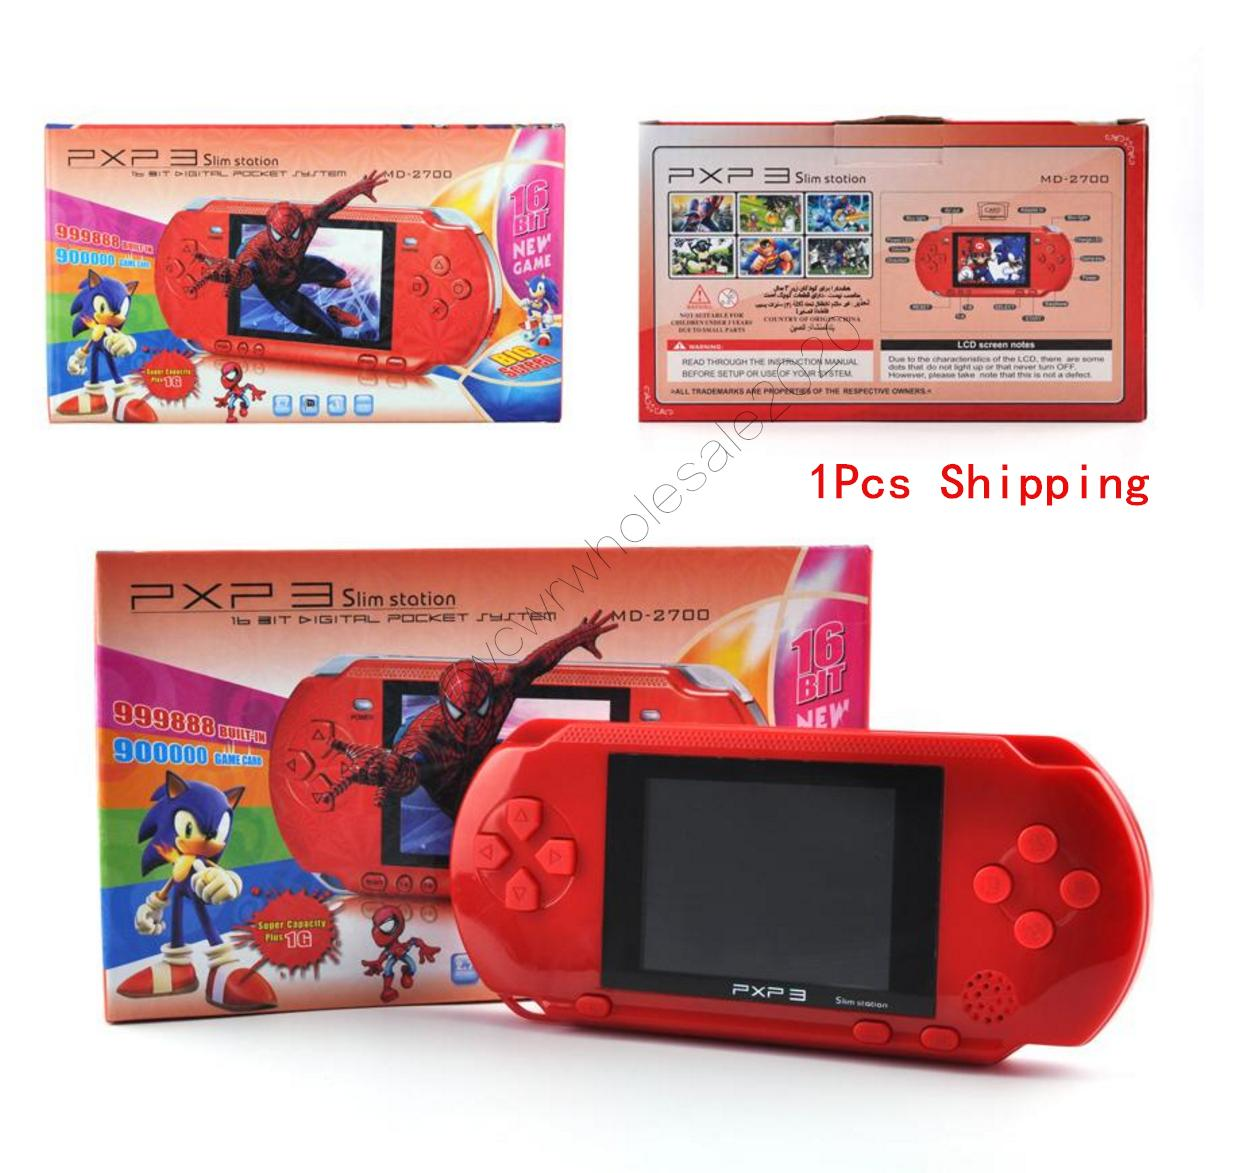 PXP3 16Bit Games Console Handheld Retro TV-Out Video Game Cartridges PXP PVP PAP GB NES SUP Game Console SEGA ortable Game Players